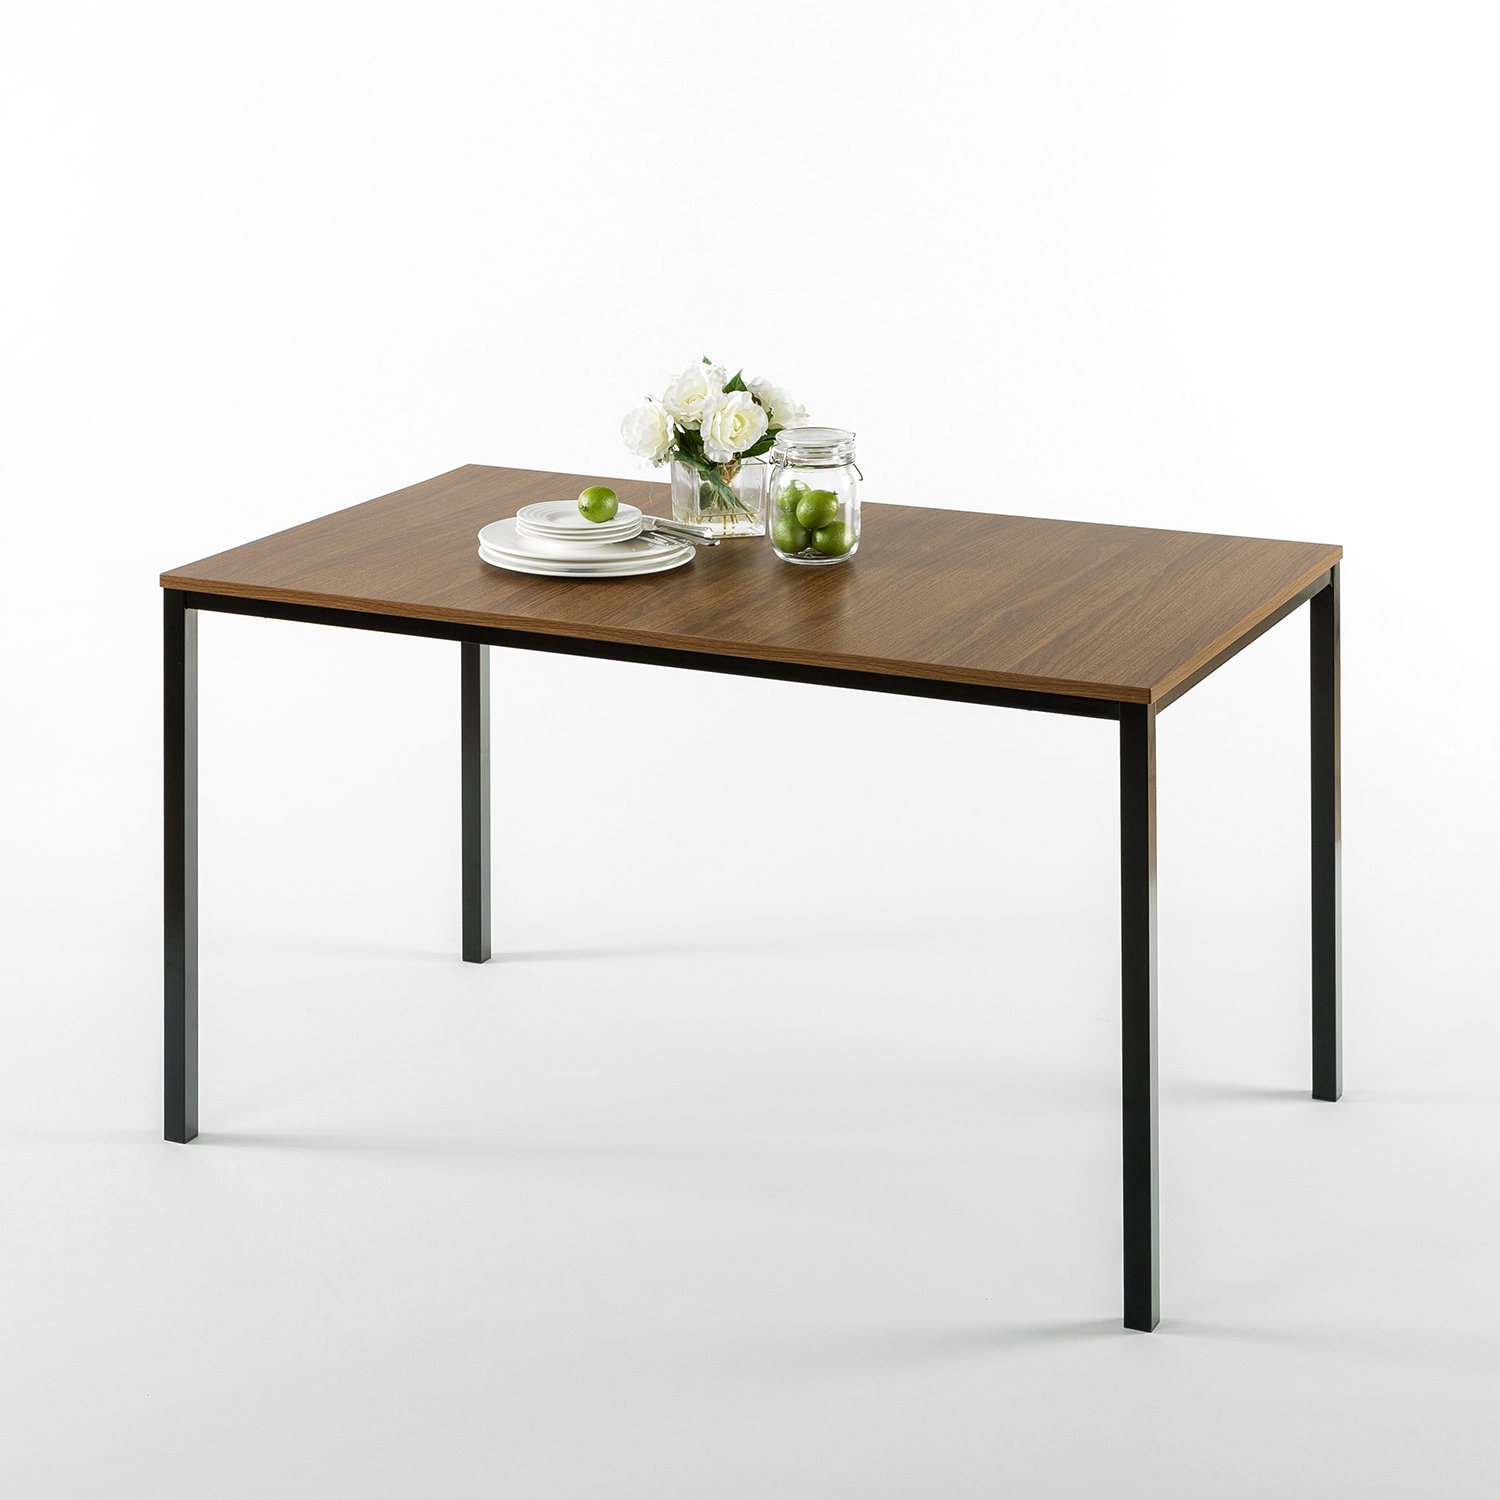 Zinus Modern Studio Collection Soho Dining Table - Office Desk - Computer Desk - Table Only